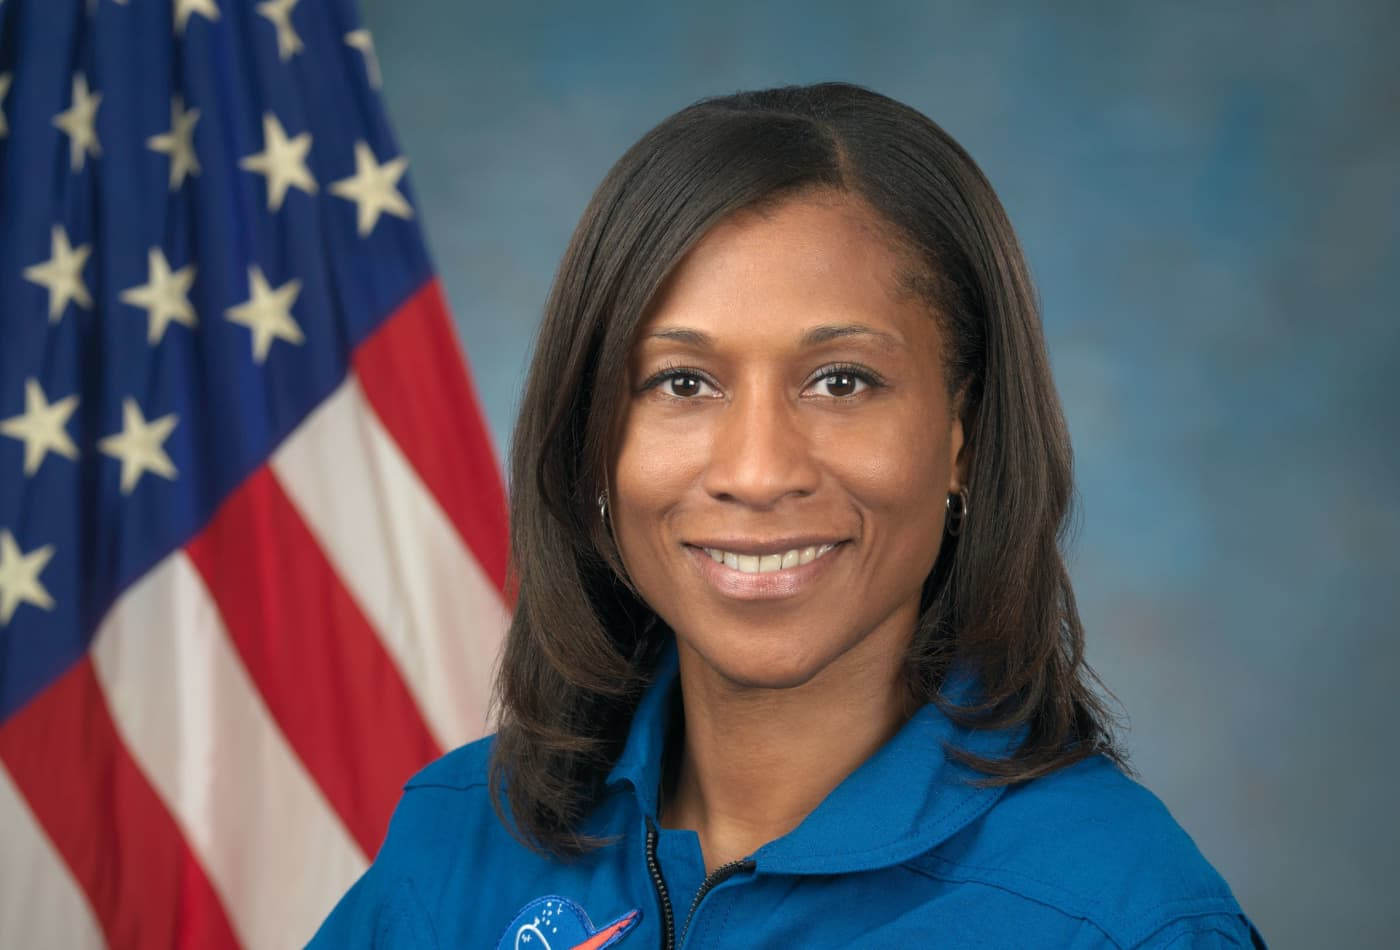 NASA astronaut Jeanette Epps to become first Black woman to join an International Space Station crew